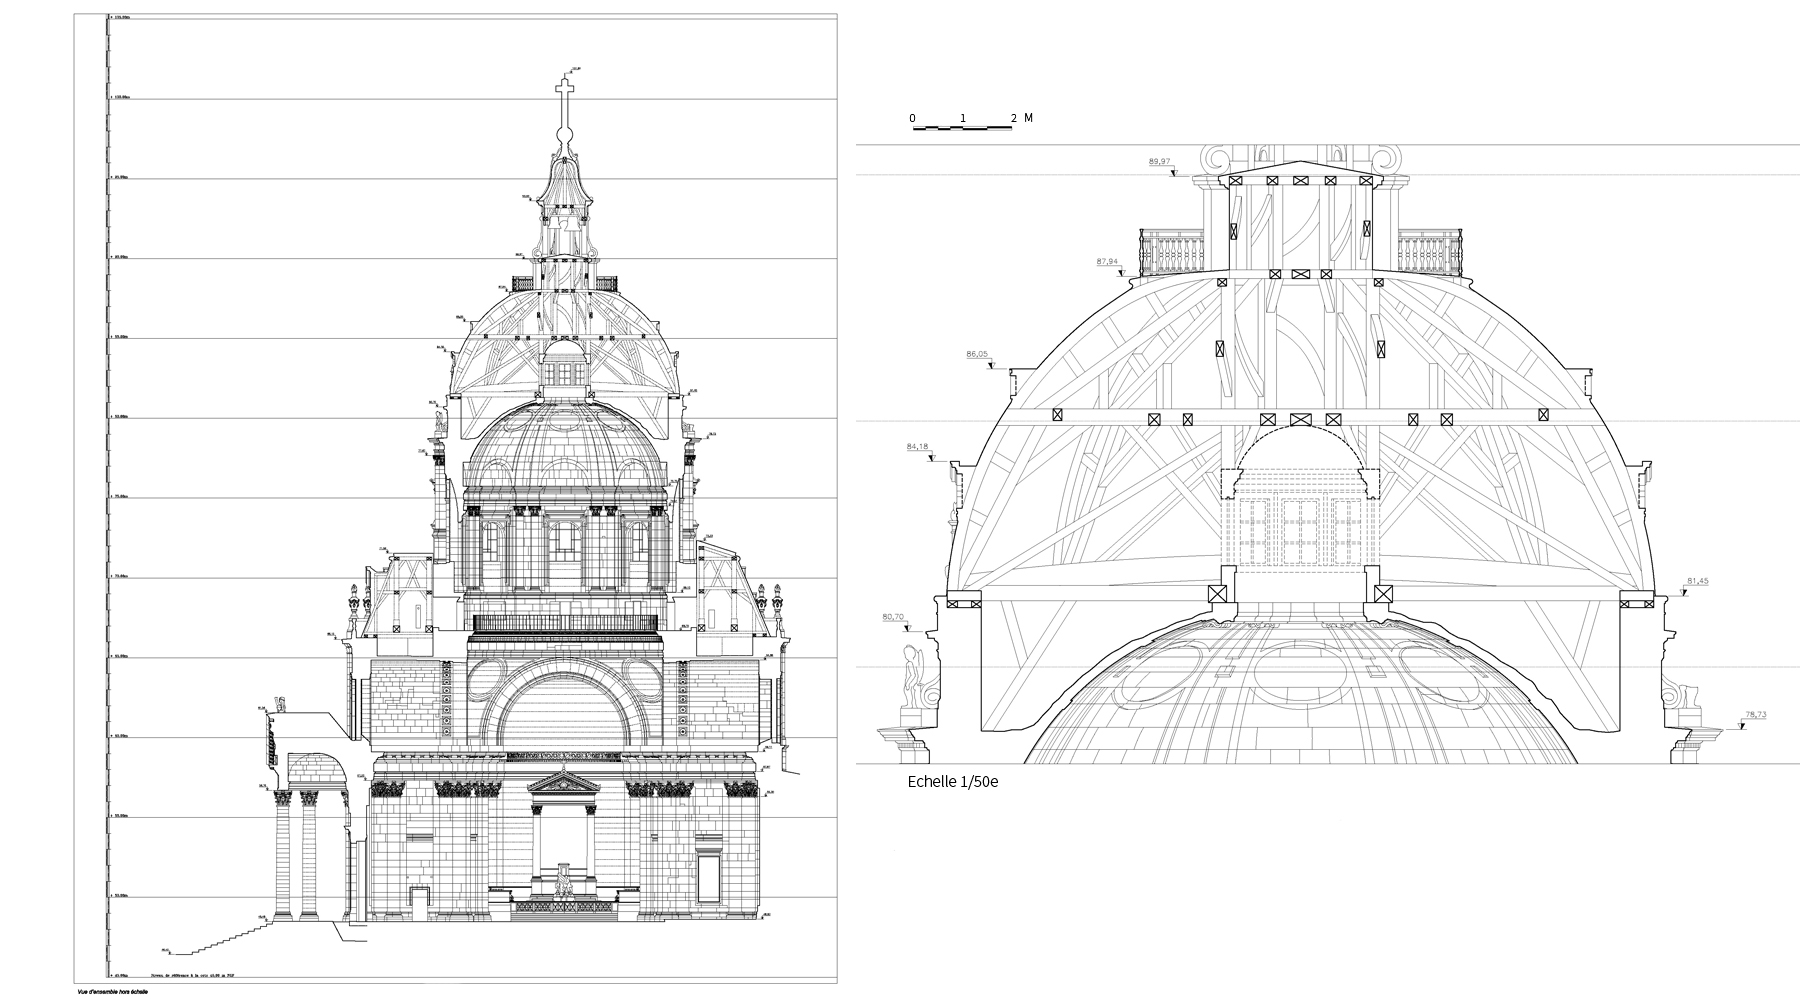 Chapelle de la Sorbonne, Paris - Sections